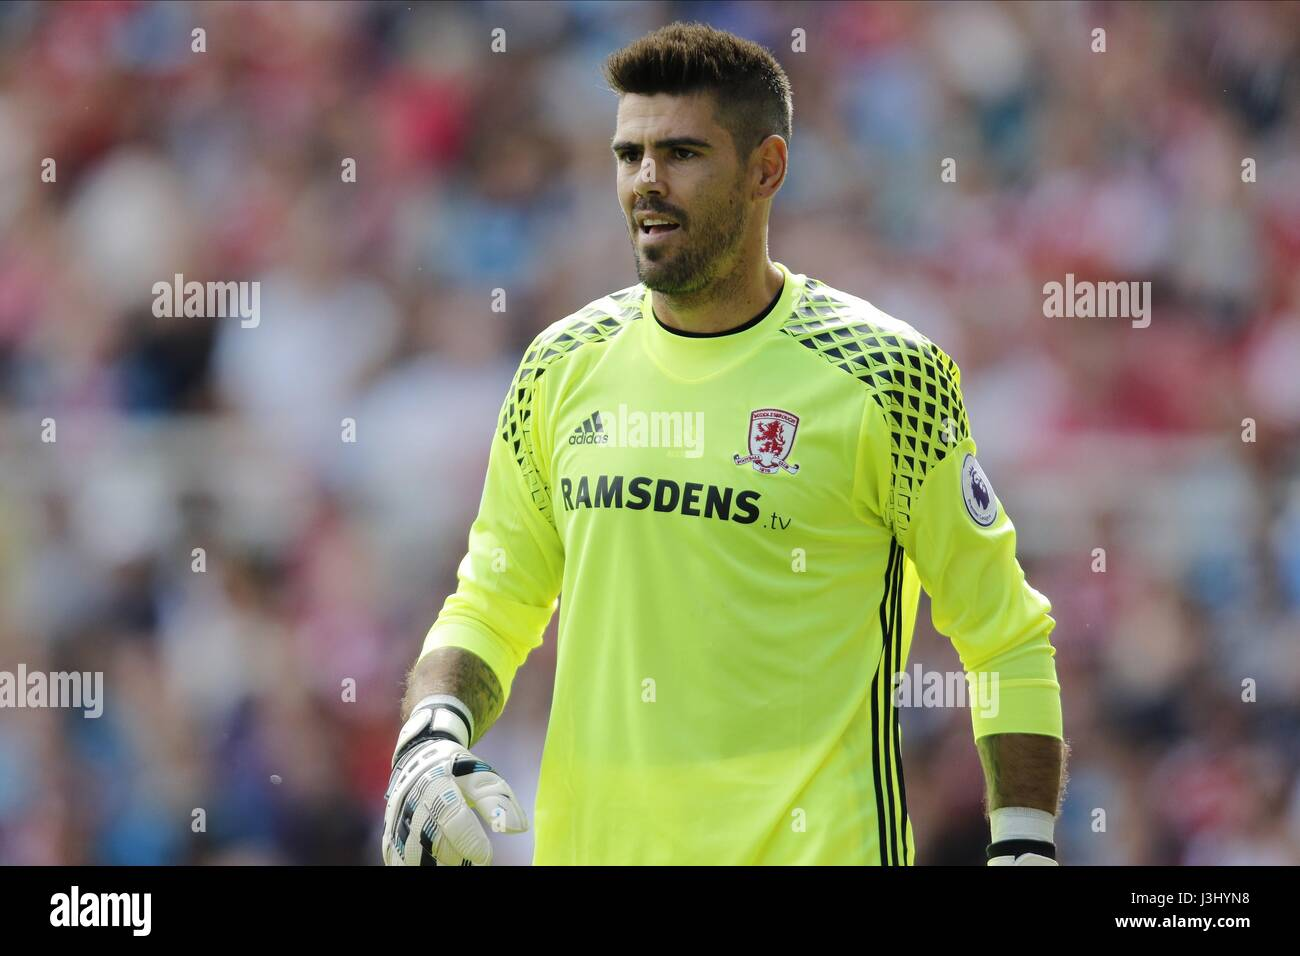 VICTOR VALDES MIDDLESBROUGH FC MIDDLESBROUGH FC RIVERSIDE STADIUM